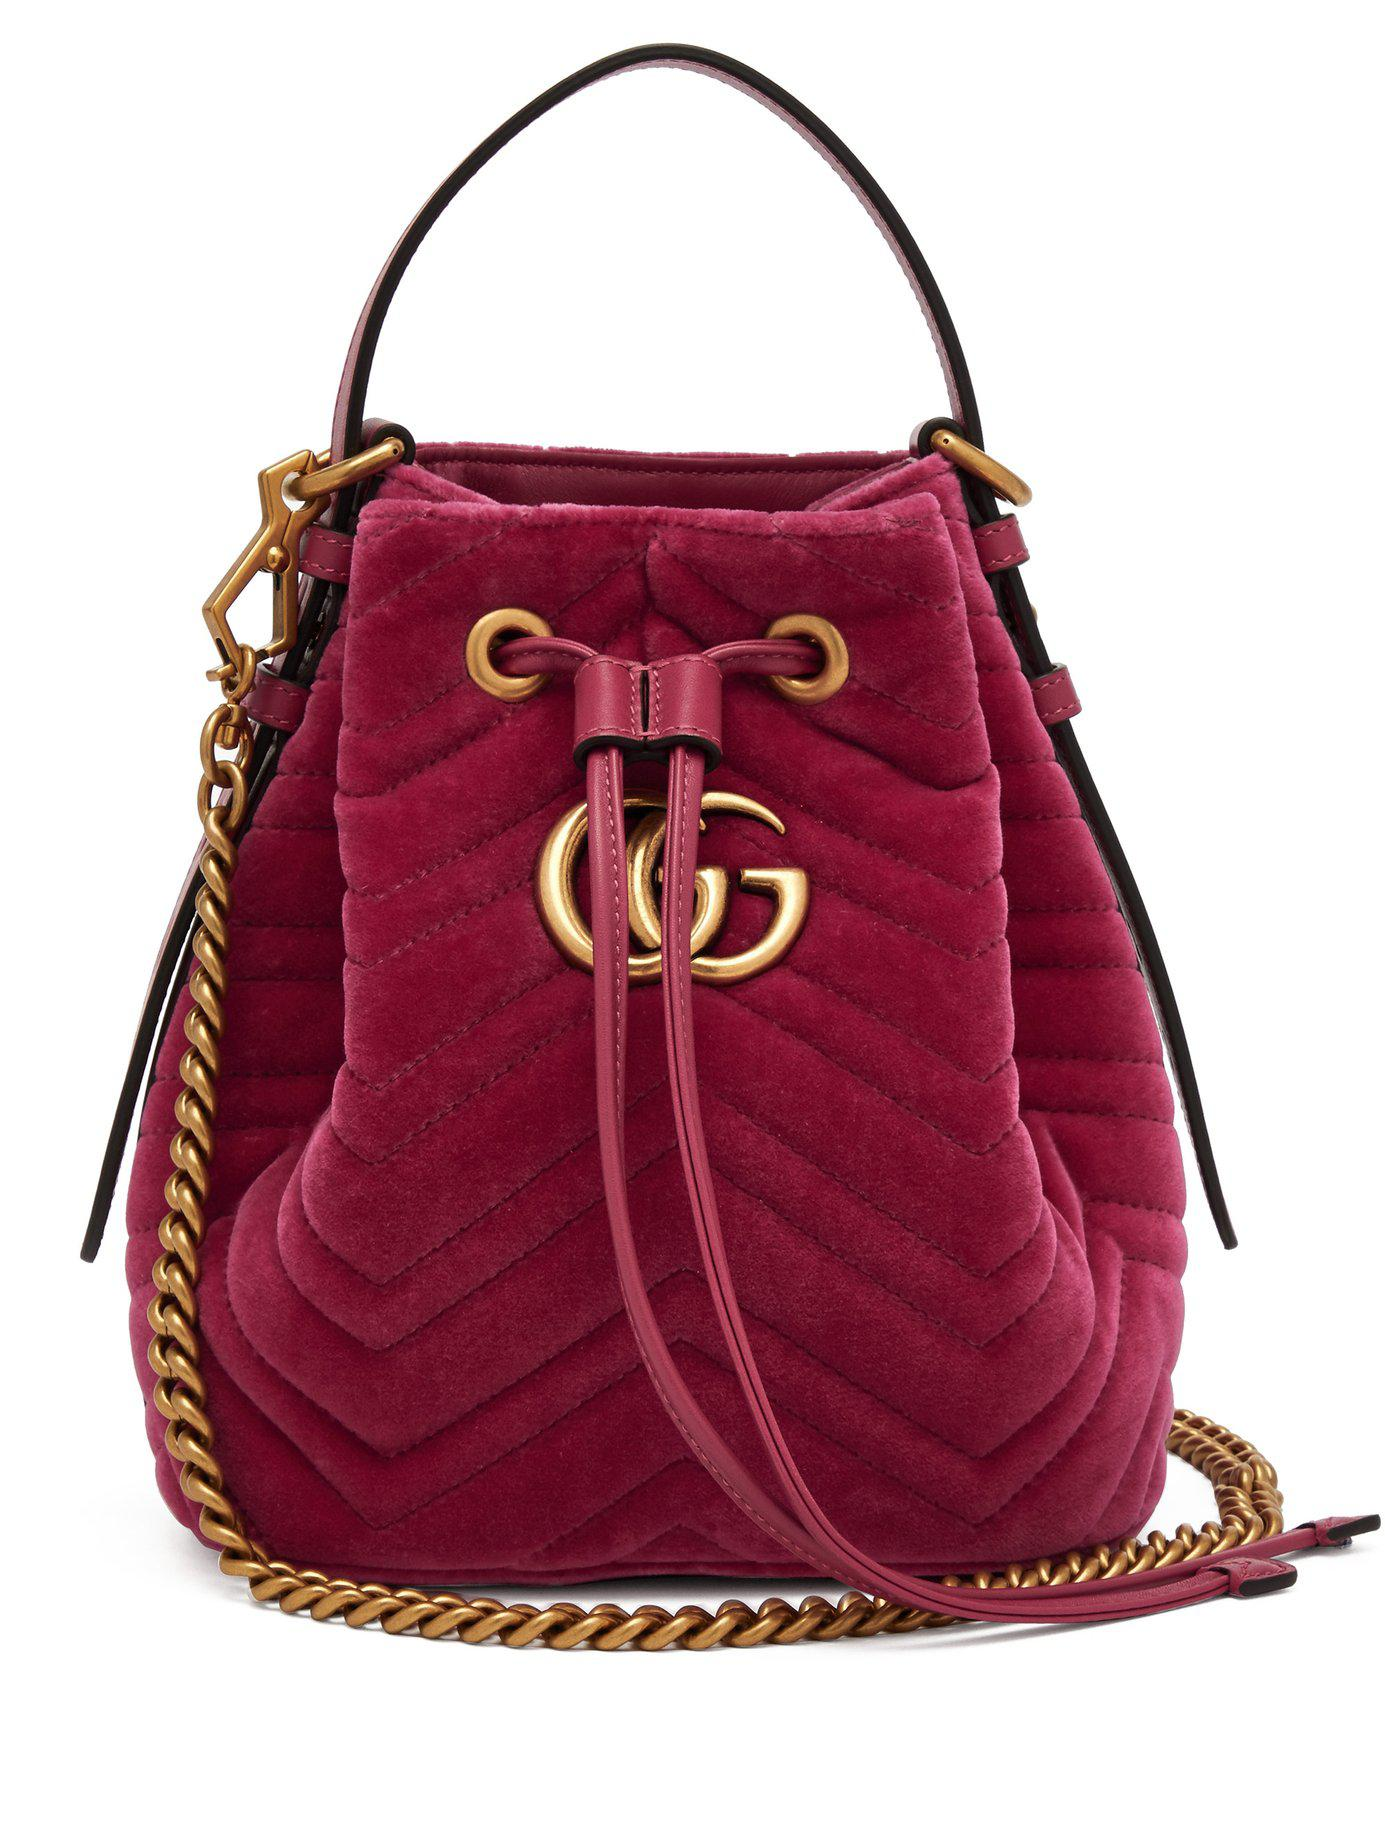 5c19475d1ba8 Lyst - Gucci Gg Marmont Quilted Velvet Drawstring Bucket Bag in Pink